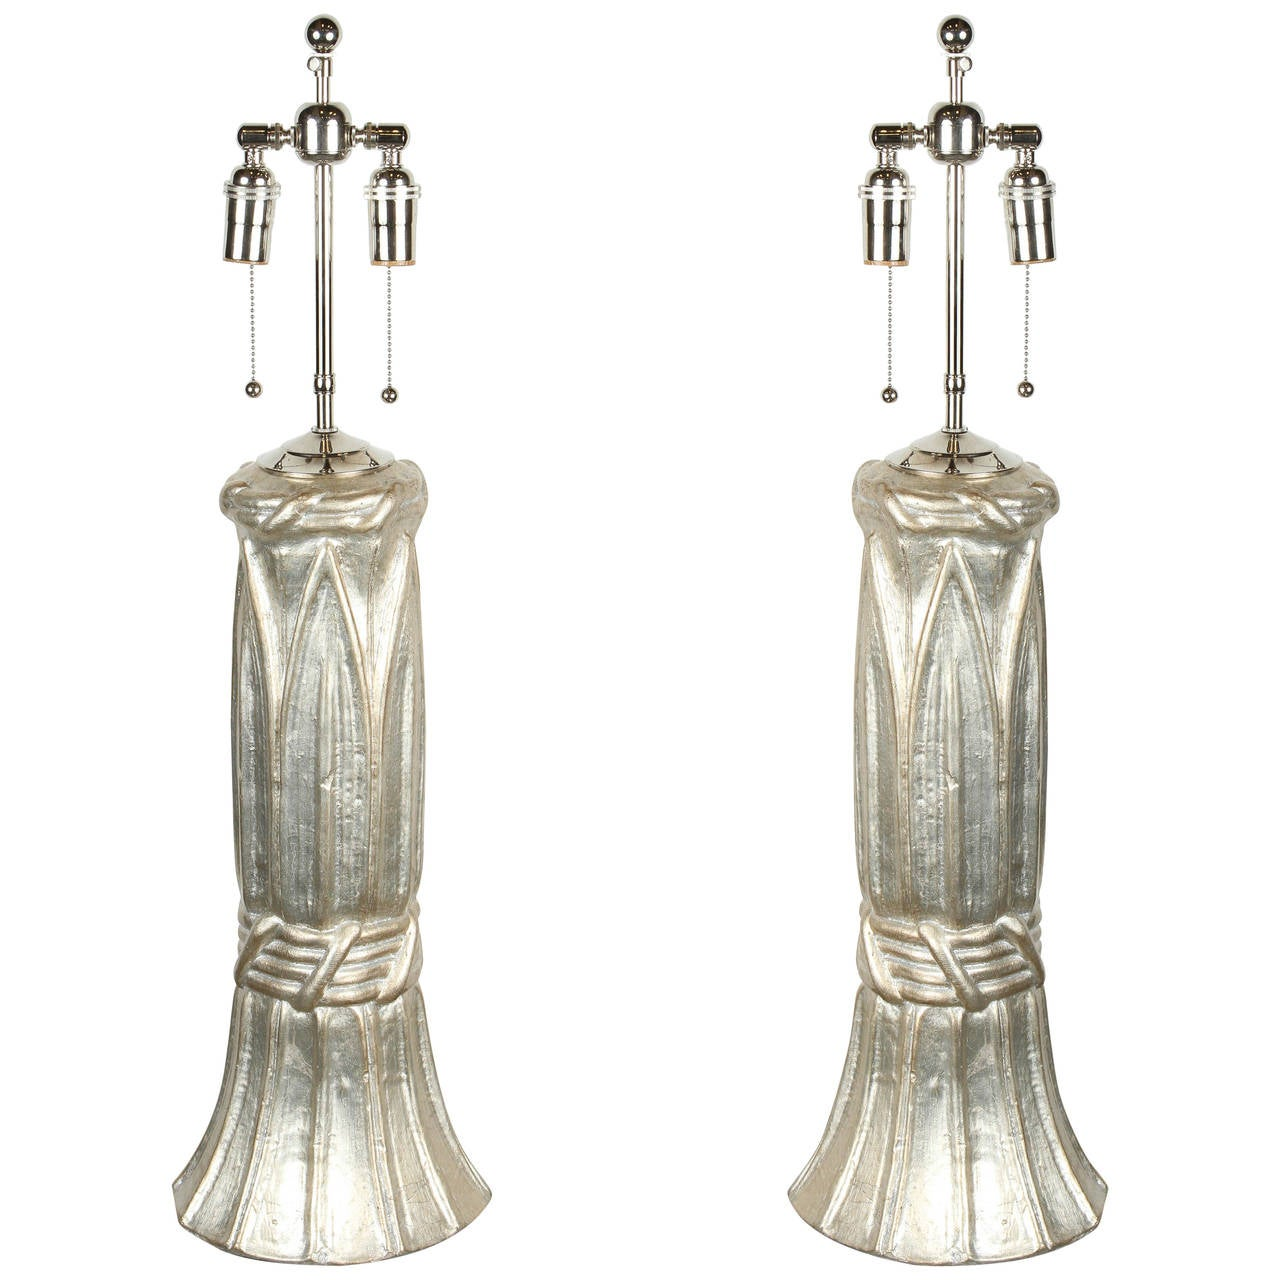 Stunning Pair of Table Lamps with a Glazed Silver Leaf Finish